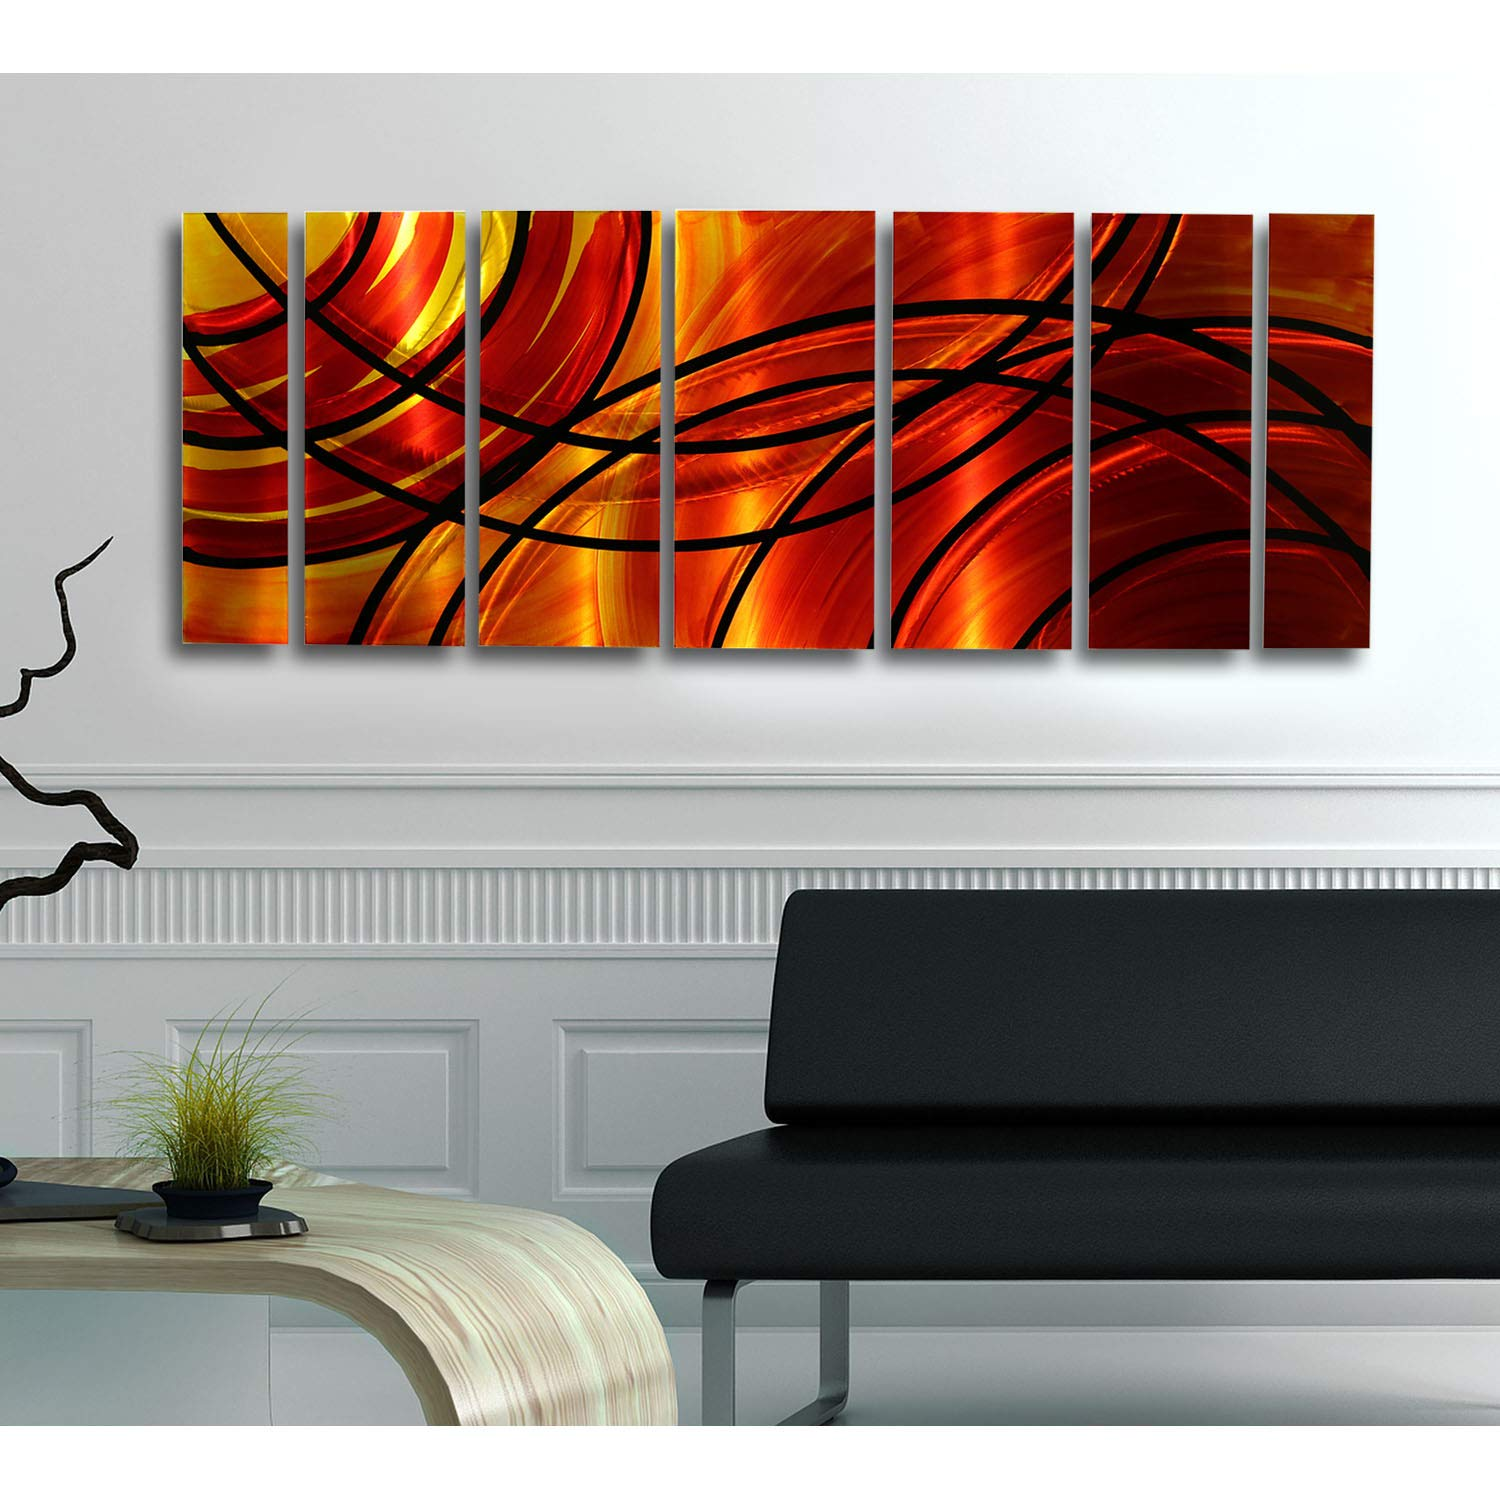 Red, Orange, Gold & Black Abstract Metal Wall Art Painting - Contemporary Handcrafted Home Decor Art Sculpture - Bound By Fire By Jon Allen